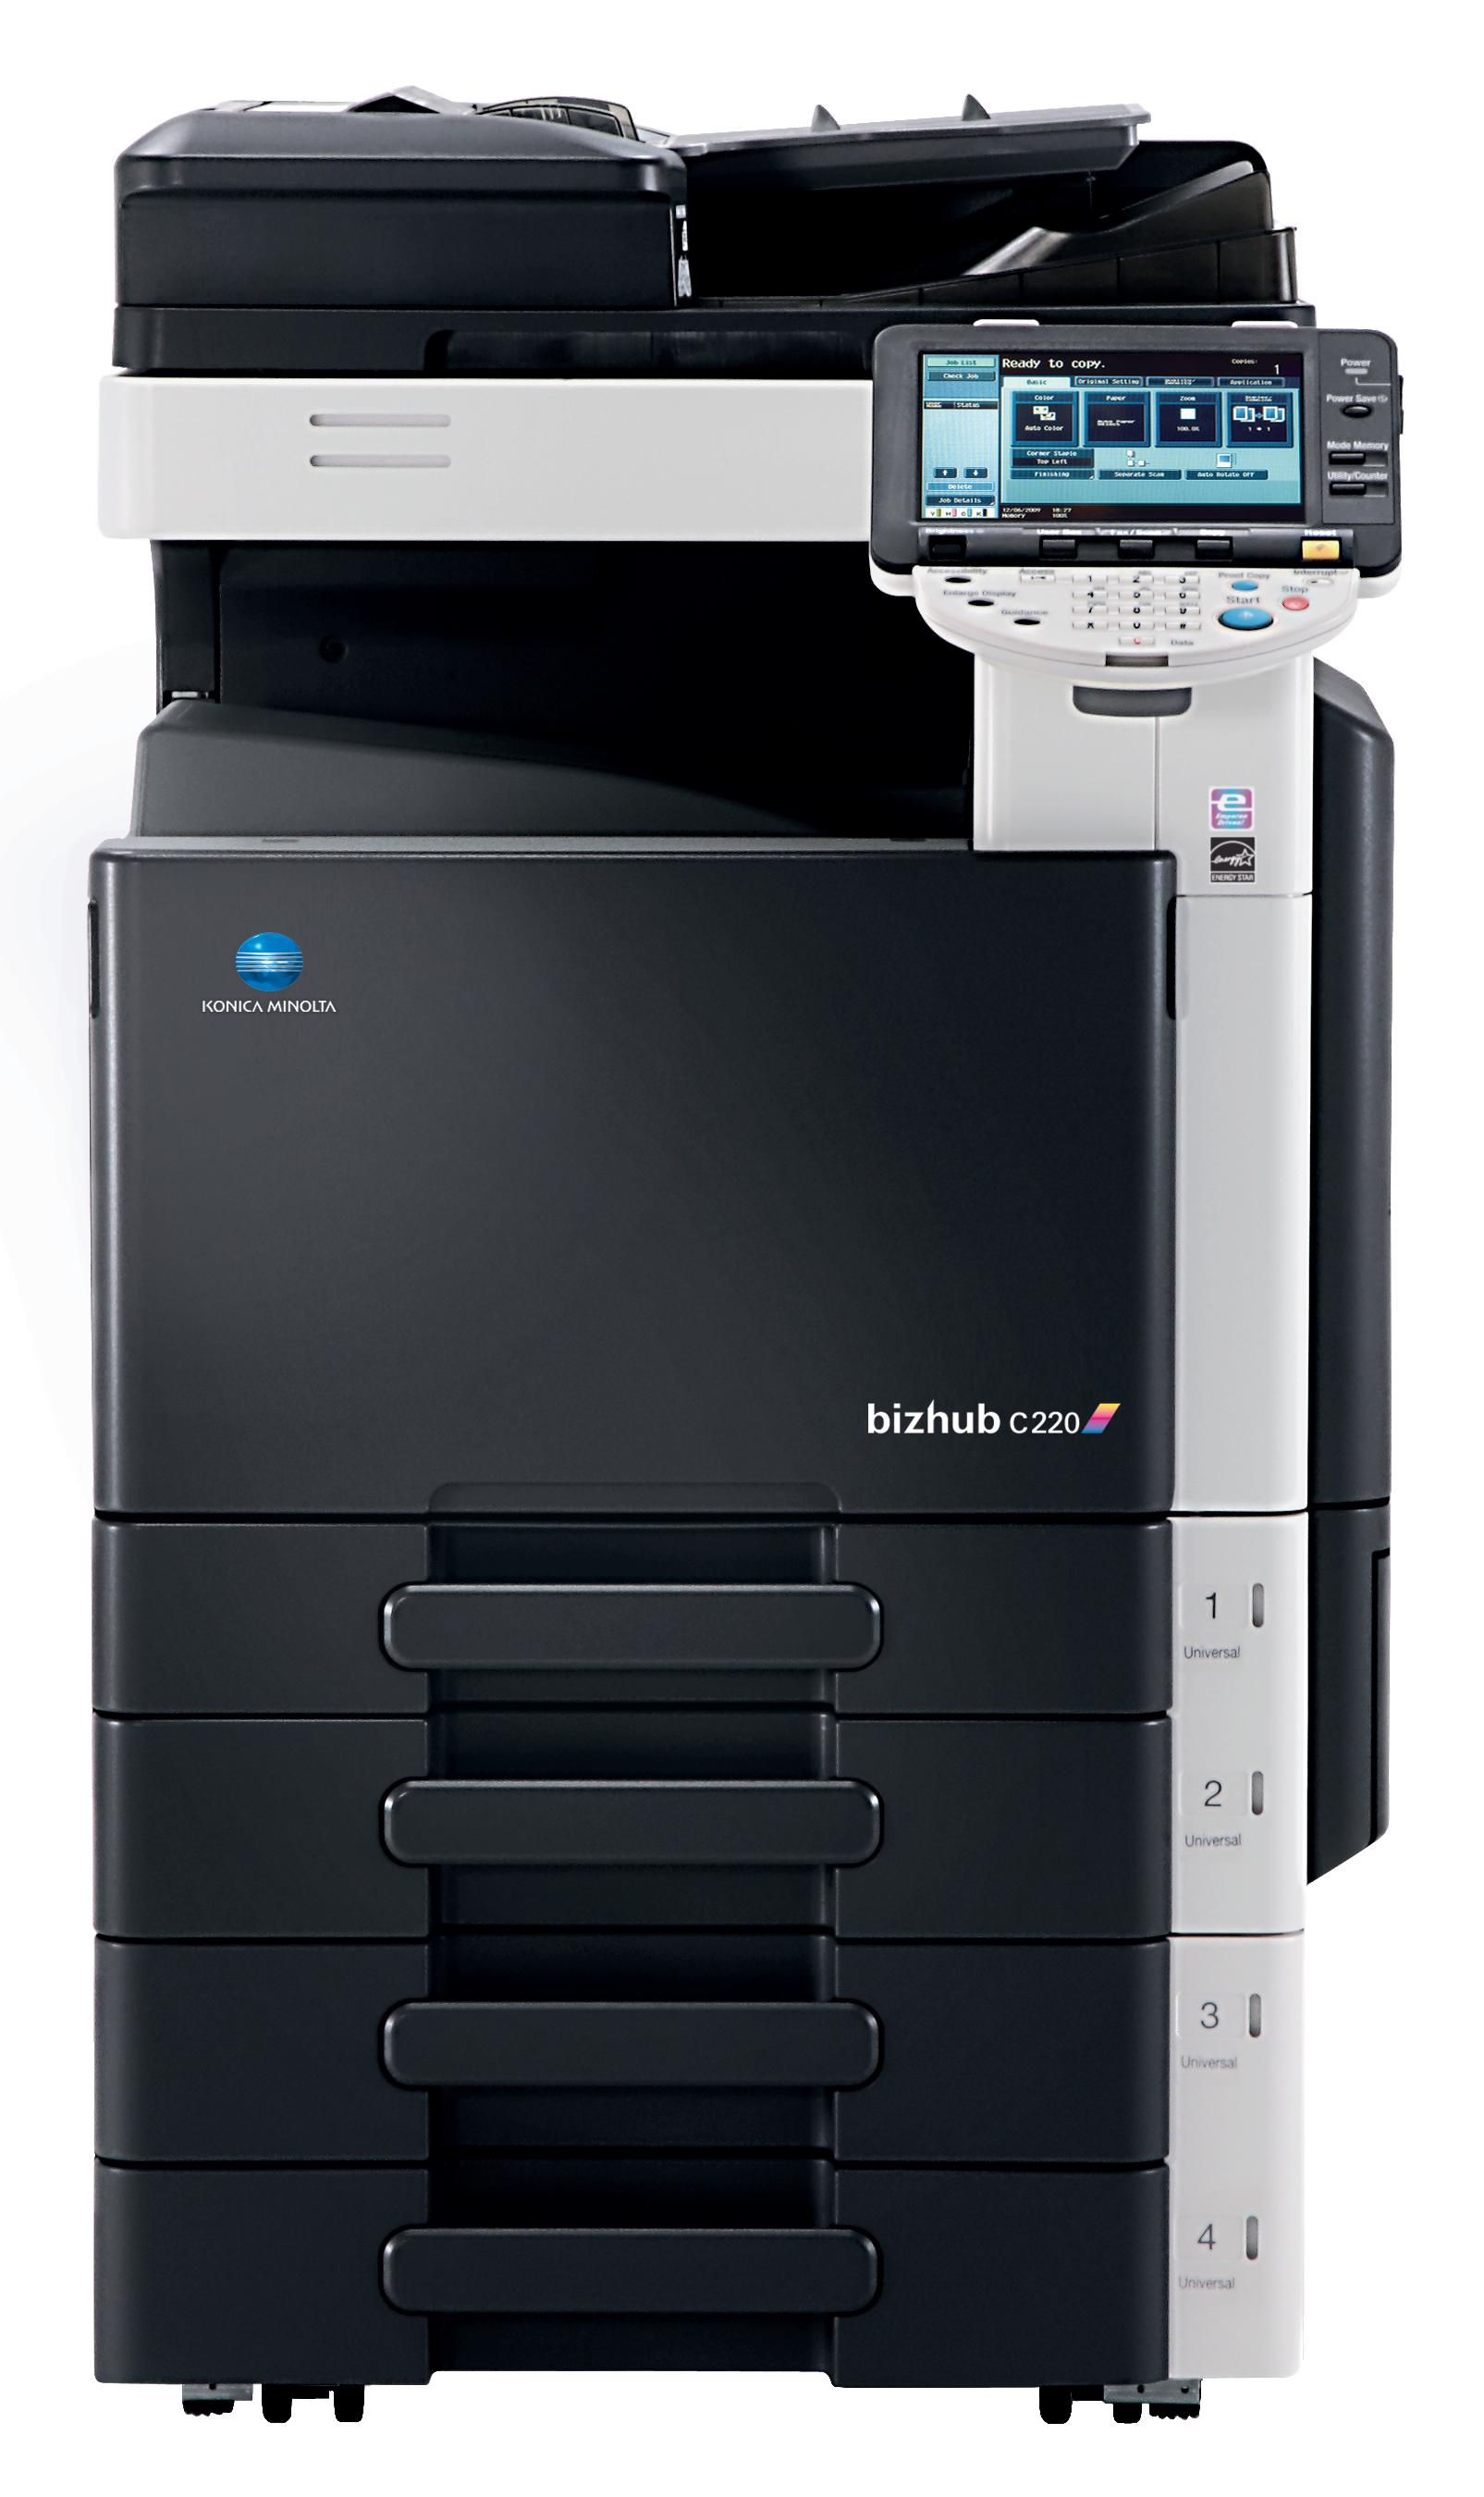 second-user-konica-minolta-bizhub-c220